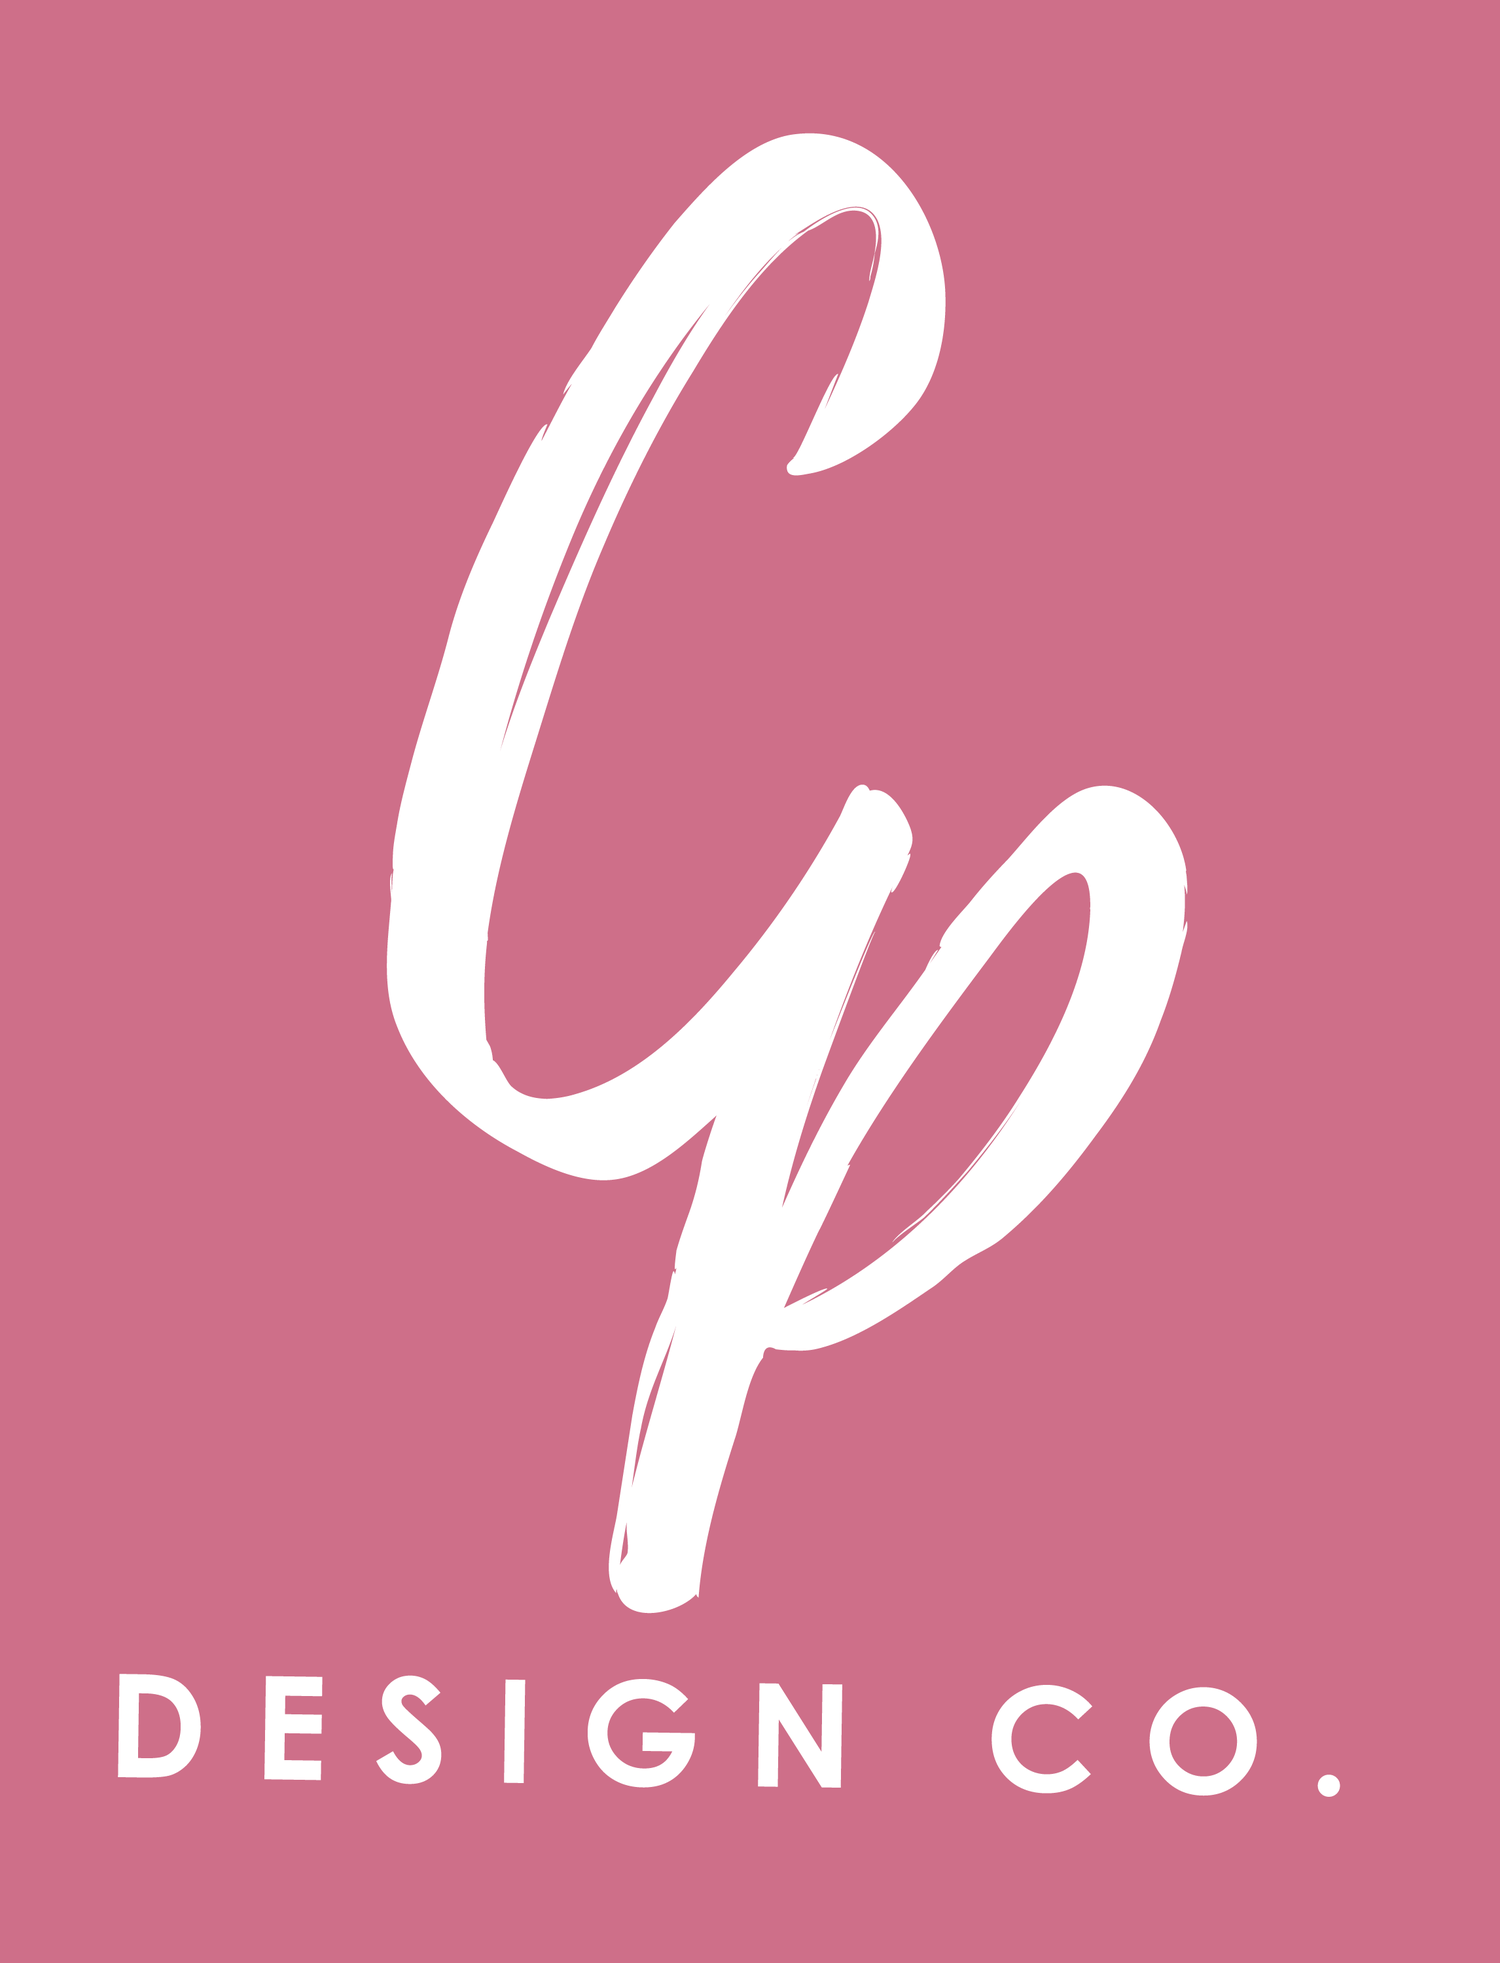 Carise Pernell Design Co.